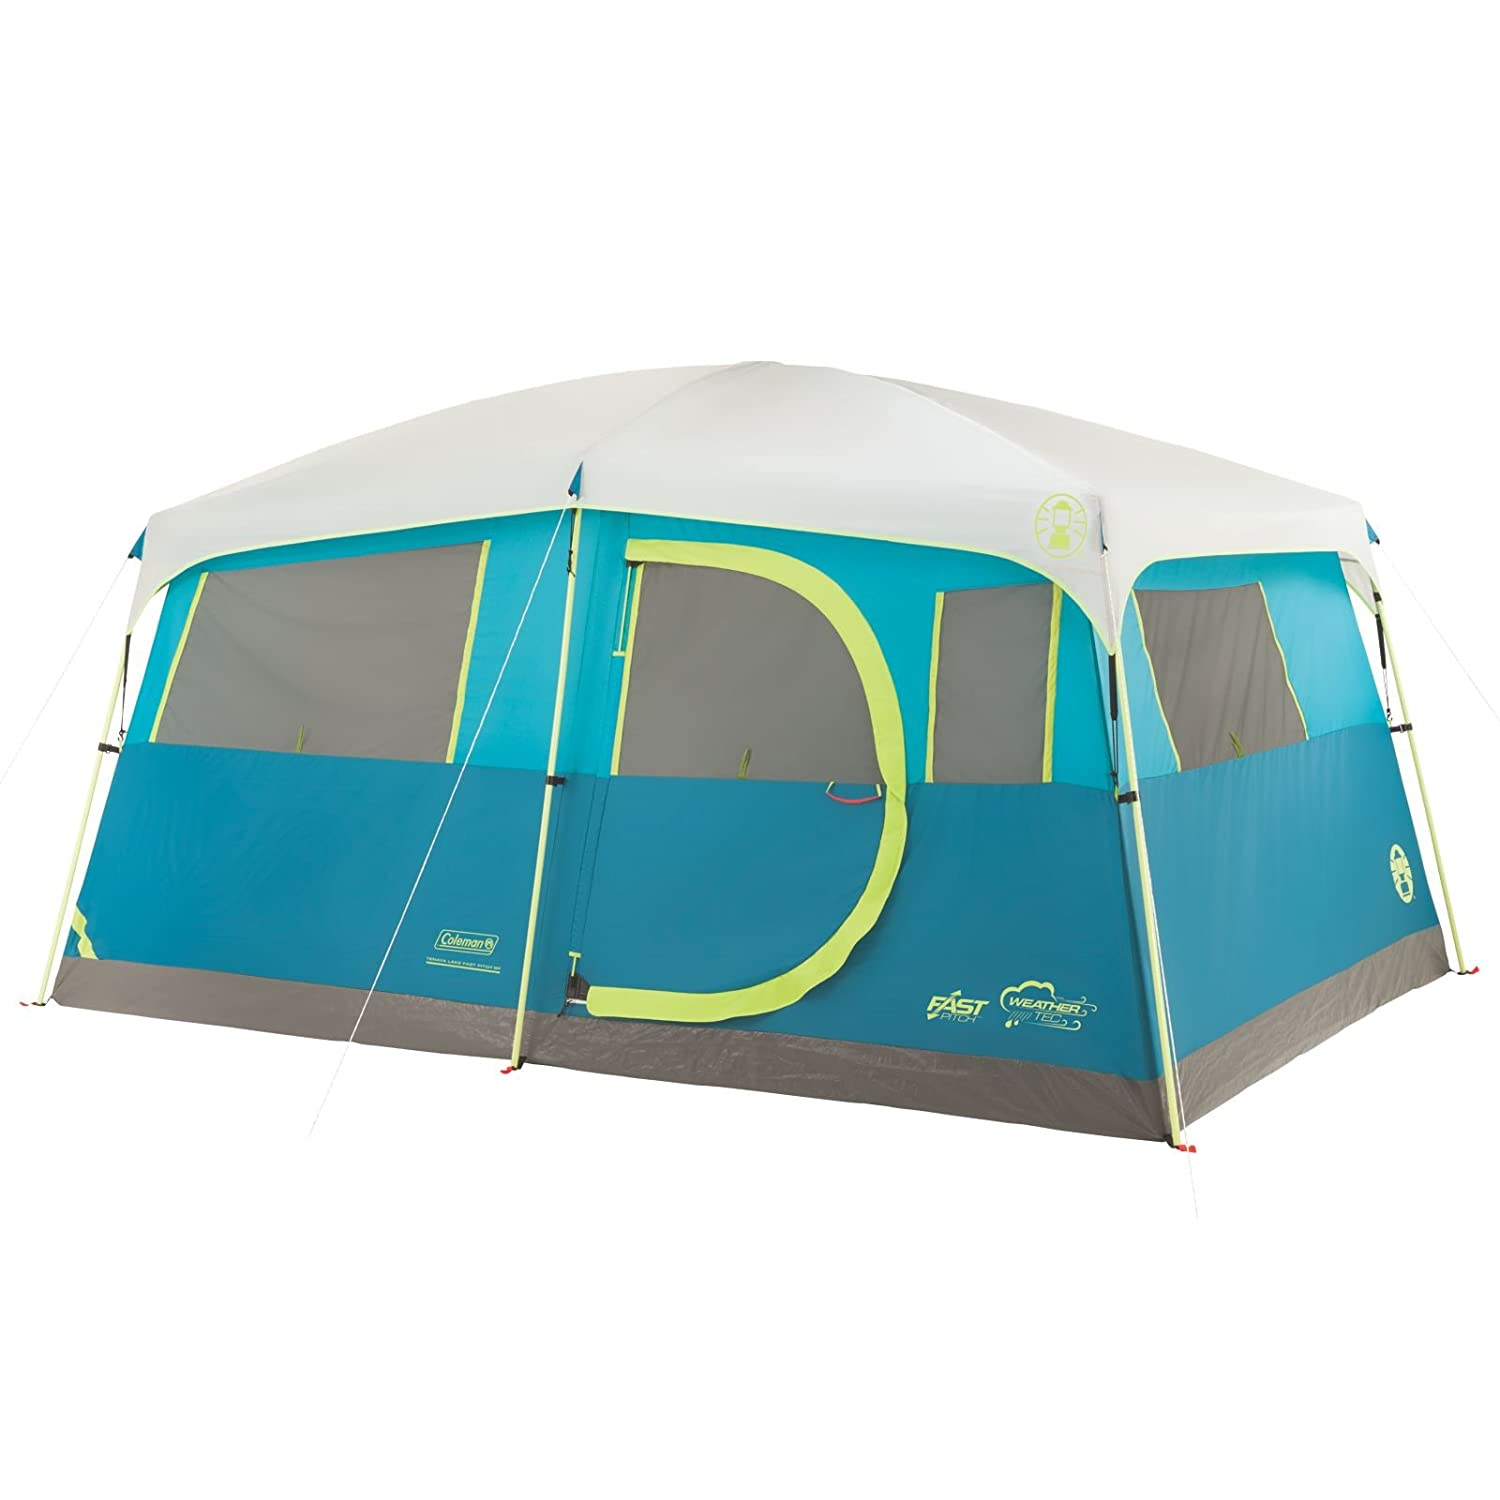 Amazon.com  Coleman Tenaya Lake Fast Pitch 8-Person Cabin Tent with Closet  Sports u0026 Outdoors  sc 1 st  Amazon.com & Amazon.com : Coleman Tenaya Lake Fast Pitch 8-Person Cabin Tent ...